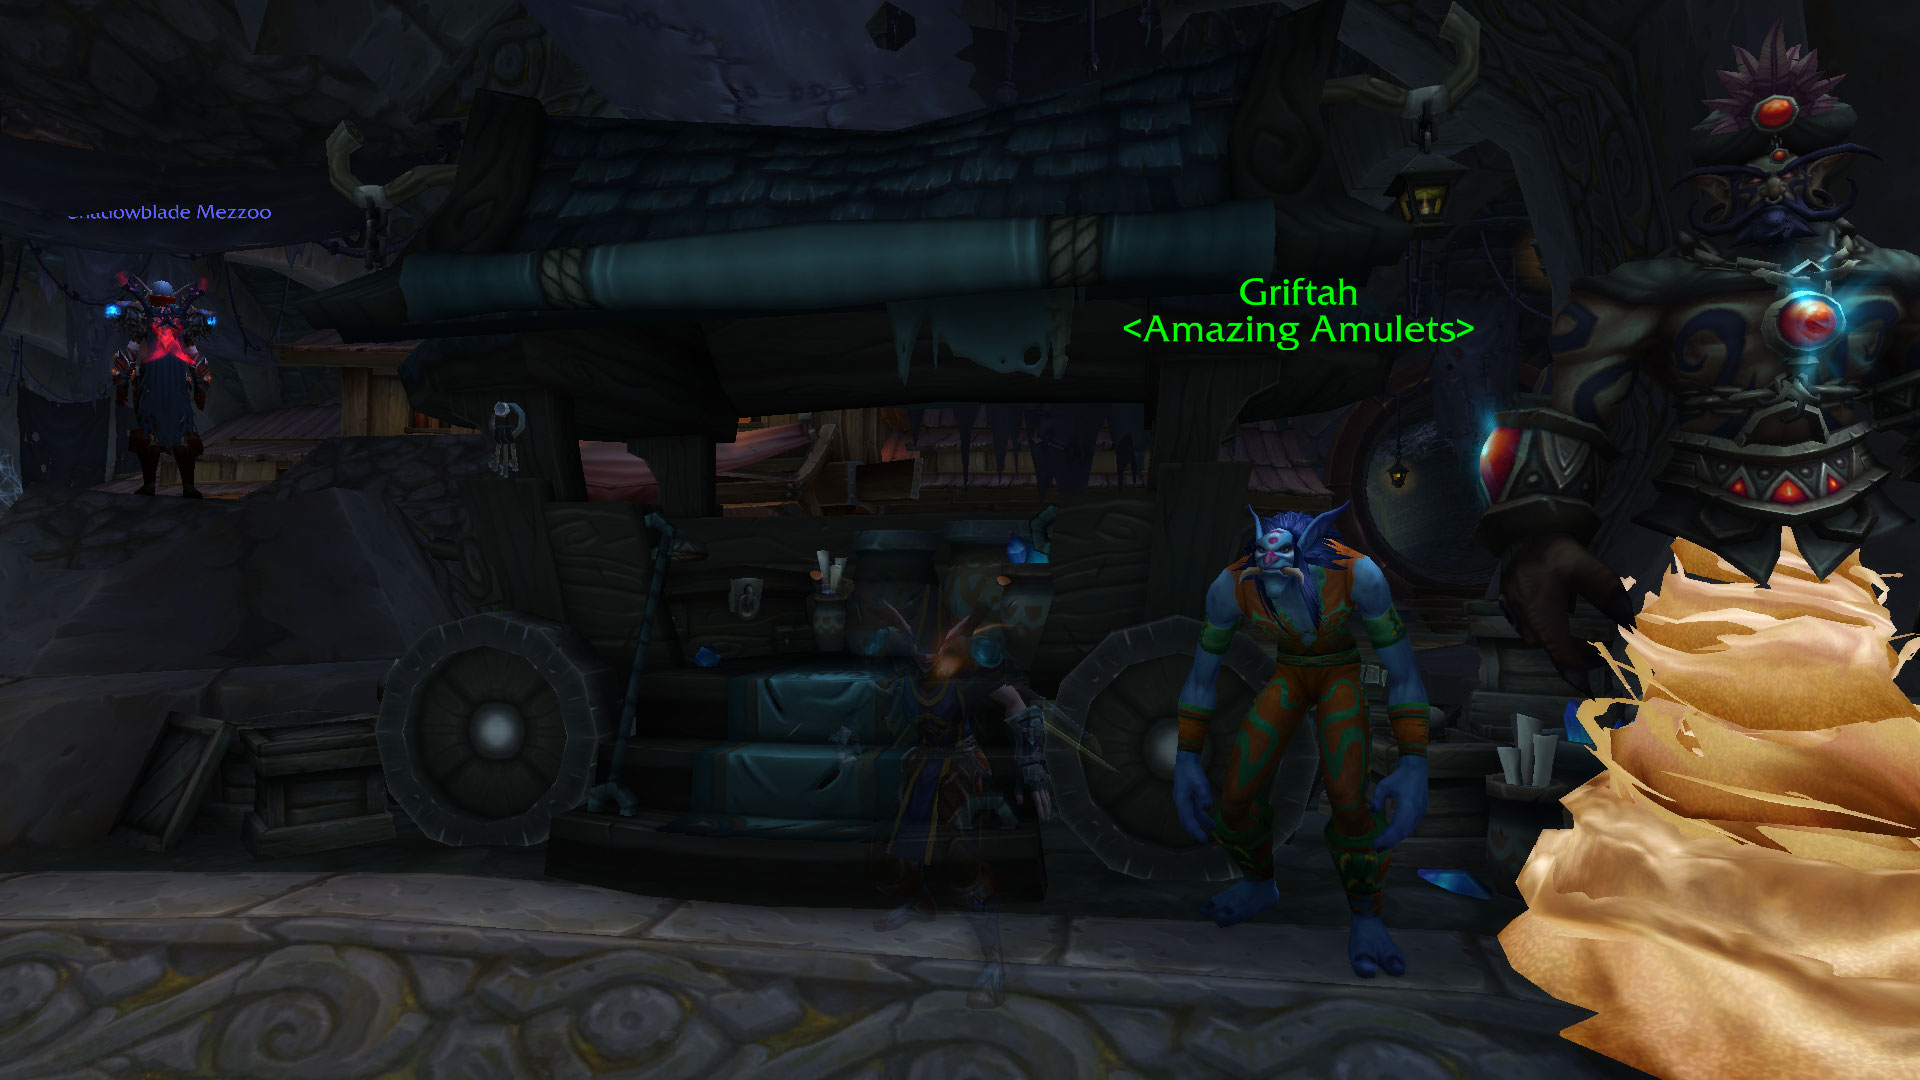 With 3 rogue alts, I've never made so much gold off of one dude.  Thanks Griftah / Submitted by Arapaw